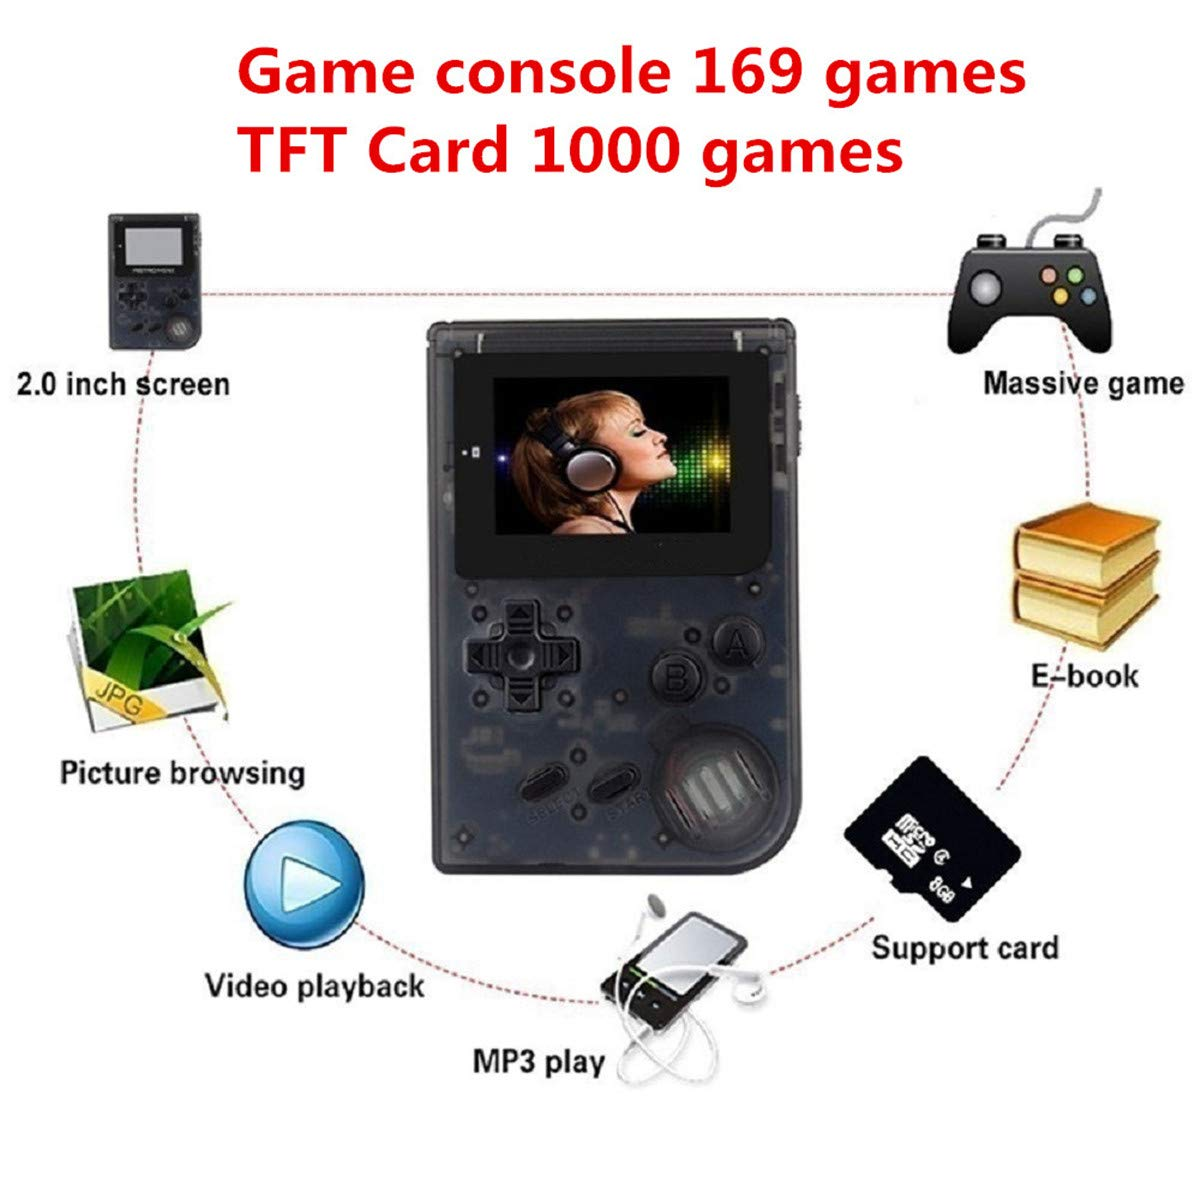 BAORUITENG Handheld Games Consoles , Retro TV Game Console Video Game Console Player 2.0 Inch Game Console with 1169 GBA System Classic Games for Kids Gift (Black) by BAORUITENG (Image #2)